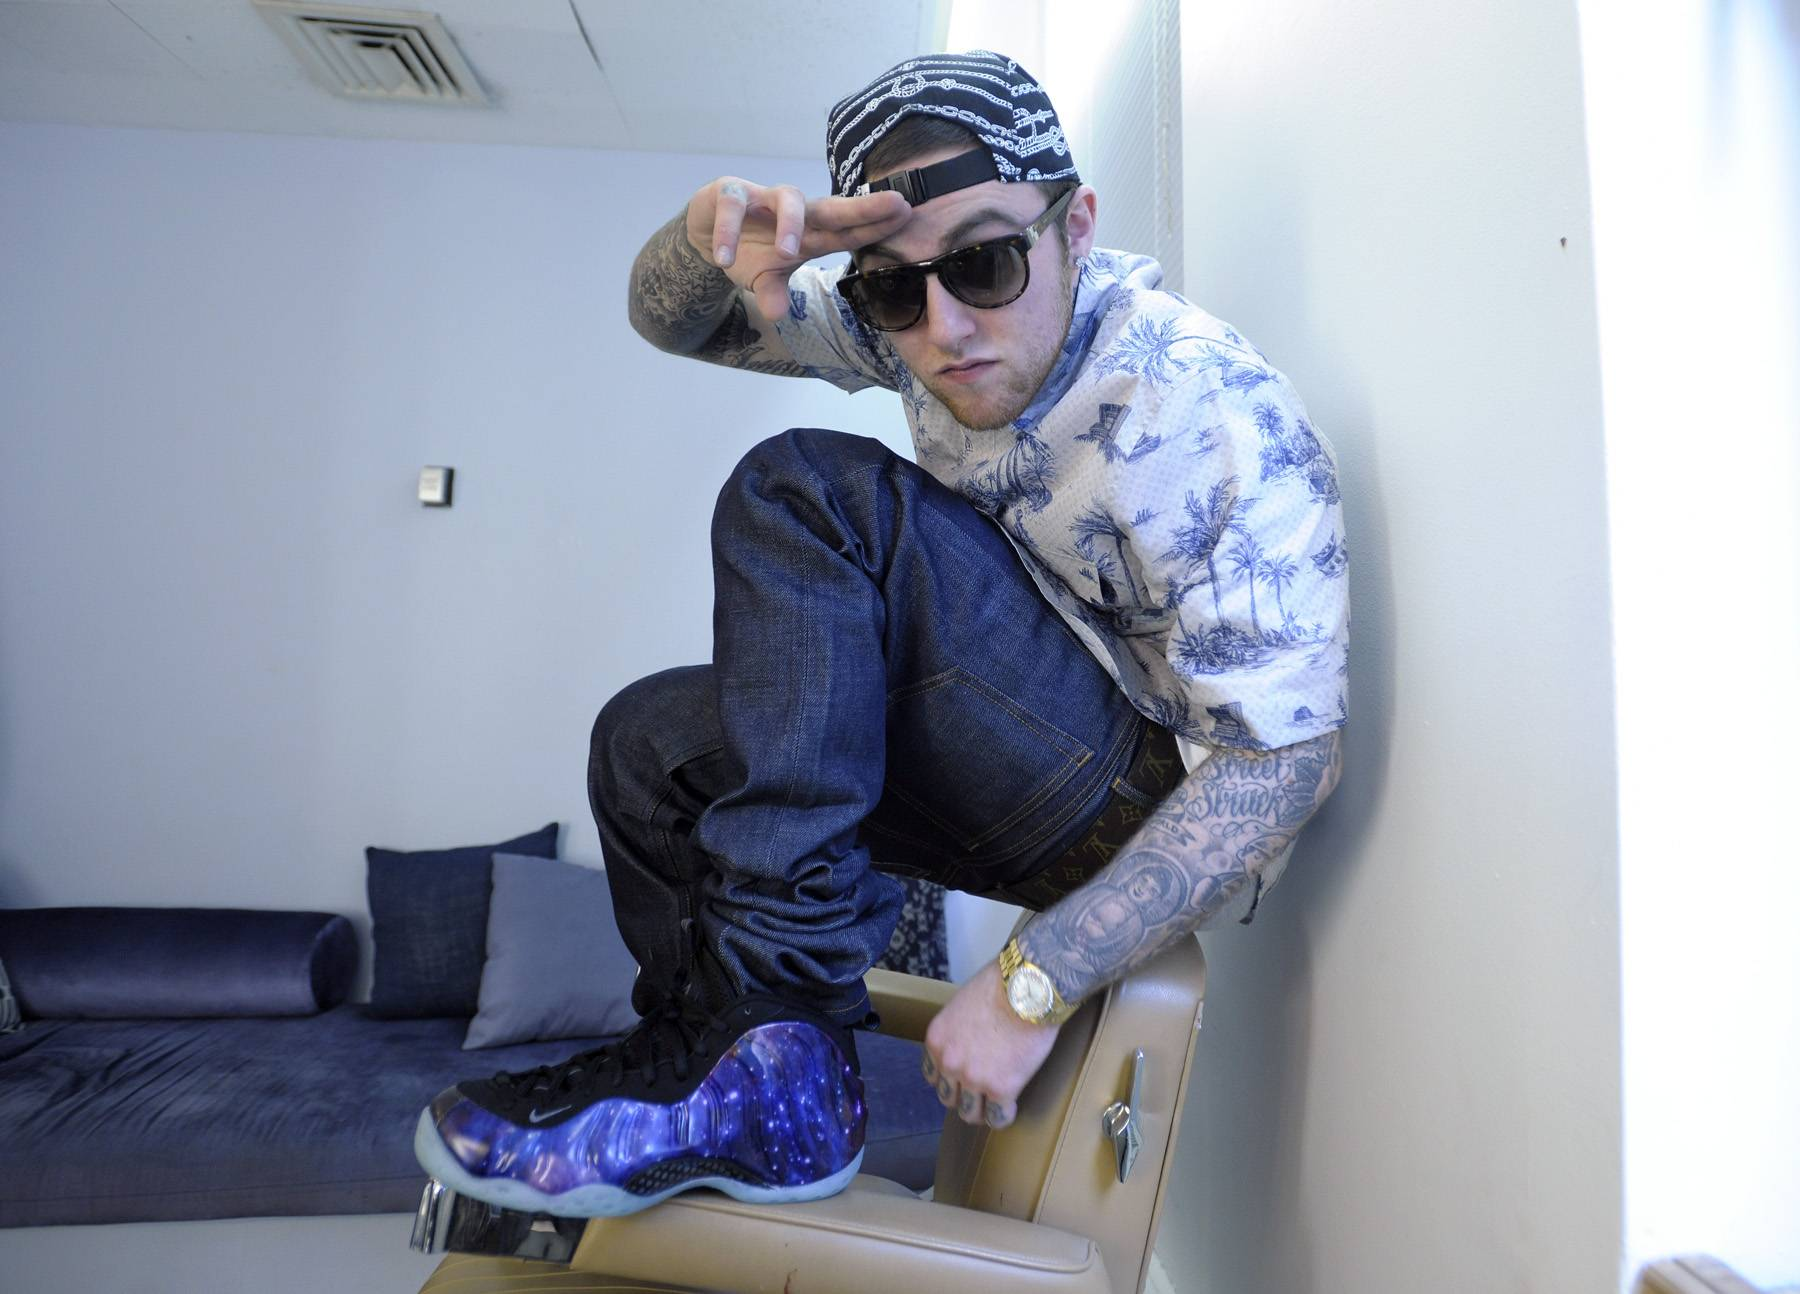 Peace Out - Mac Miller in the green room at 106 & Park, April 26, 2012. (Photo: John Ricard / BET)